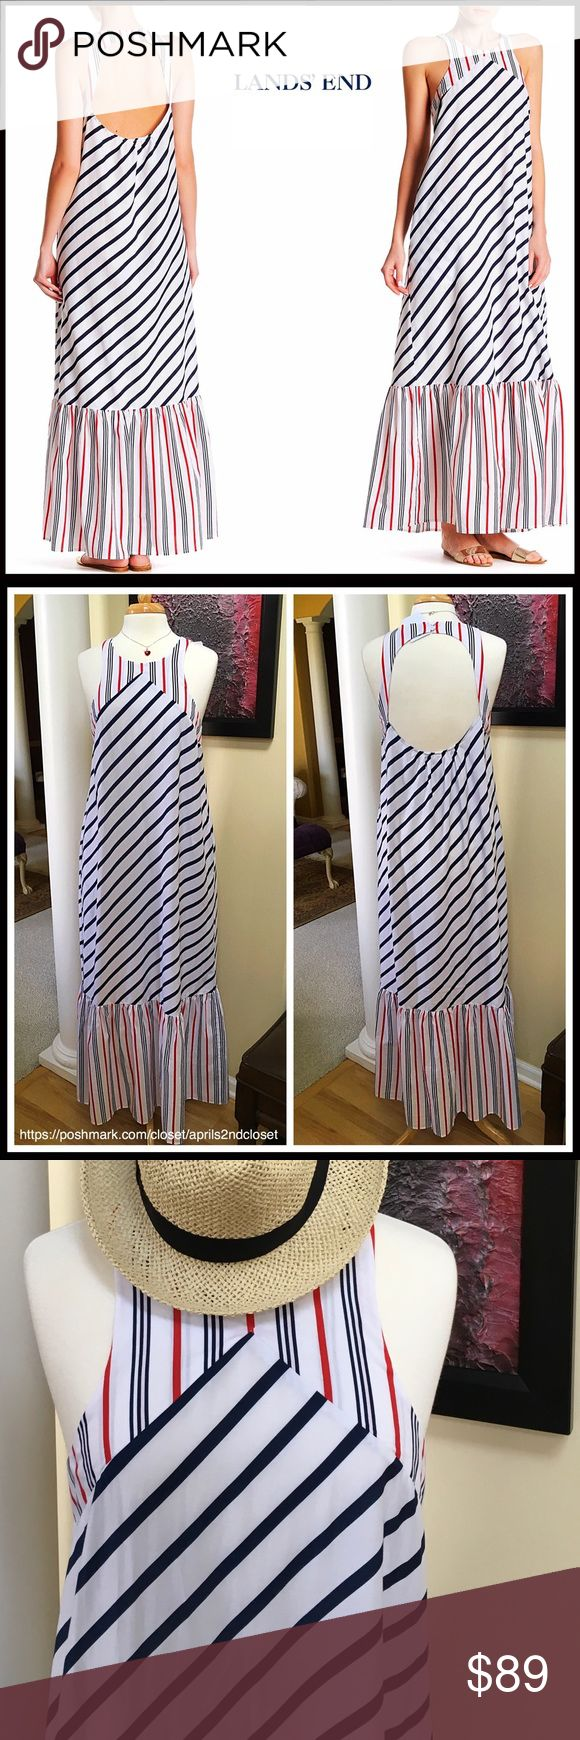 """LANDS' END Resort Maxi Dress Coverup LANDS' END Printed Maxi Dress   SIZING-Tagged M = 8-10  COLOR- Deep Sea, Red, White Combo  ABOUT THIS ITEM * Crew Neck; 2 on seam pockets   * Striped print w/a vintage nautical look * Back double button closure & elastic back * Approx 61"""" long * Cutout back & ruffle hem details * Subtle A-line silhouette  FABRIC cotton, 30% silk      ❌NO TRADES❌ ✅BUNDLE DISCOUNTS ✅ OFFERS CONSIDERED (Via the offer button only)  ITEM# SEARCH WORDS # slip Lands' End Swim…"""